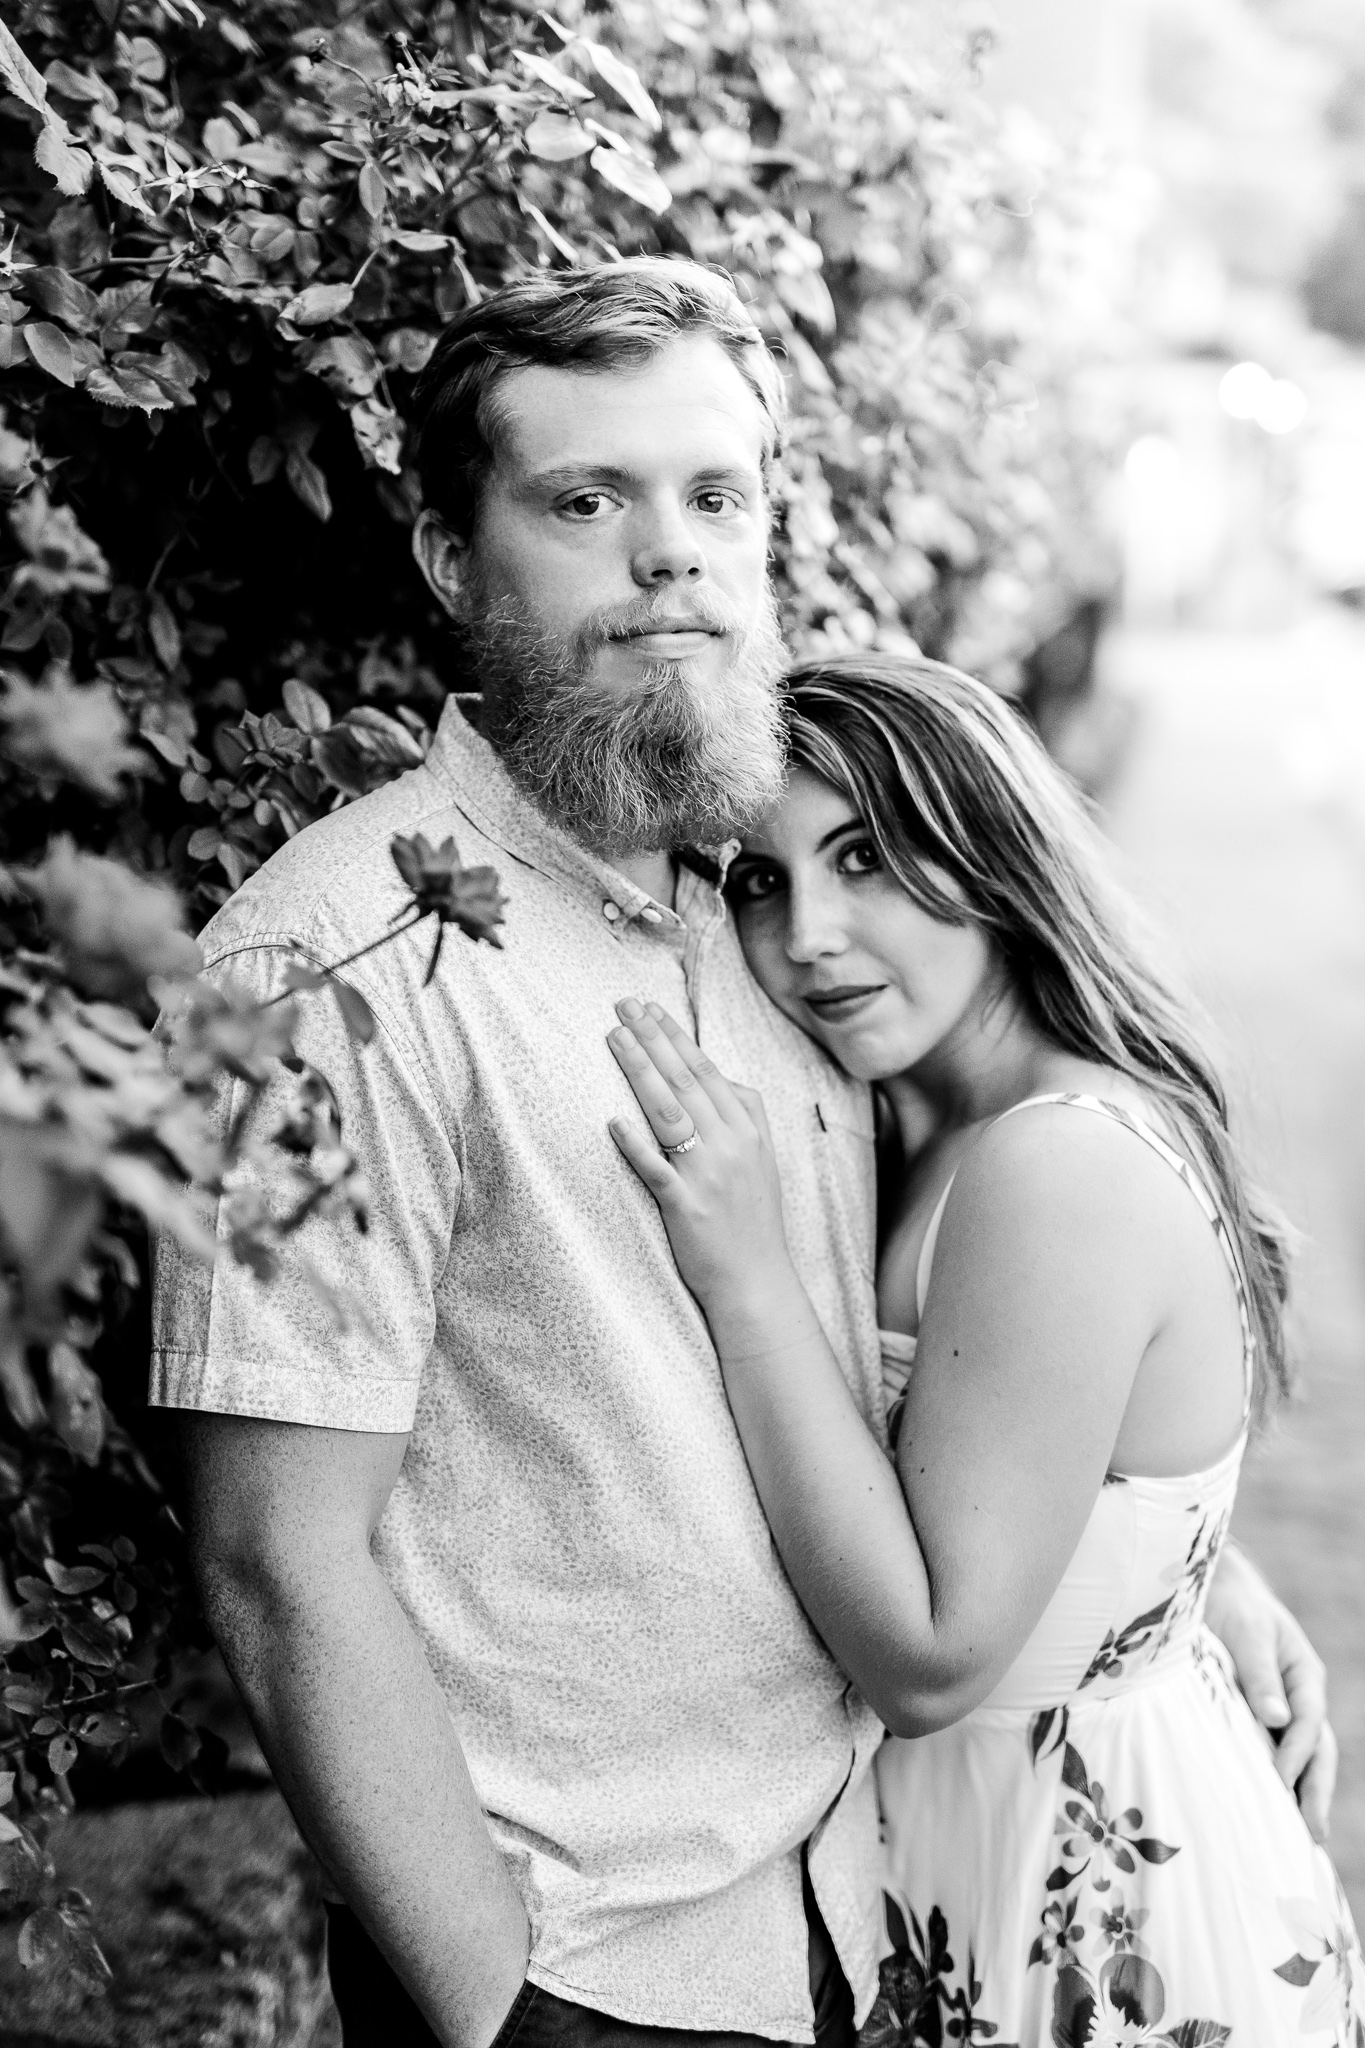 An engaged couple stand together with her head on his shoulder near a garden during their summer sunset engagement session in Historic Occoquan, Northern Virginia